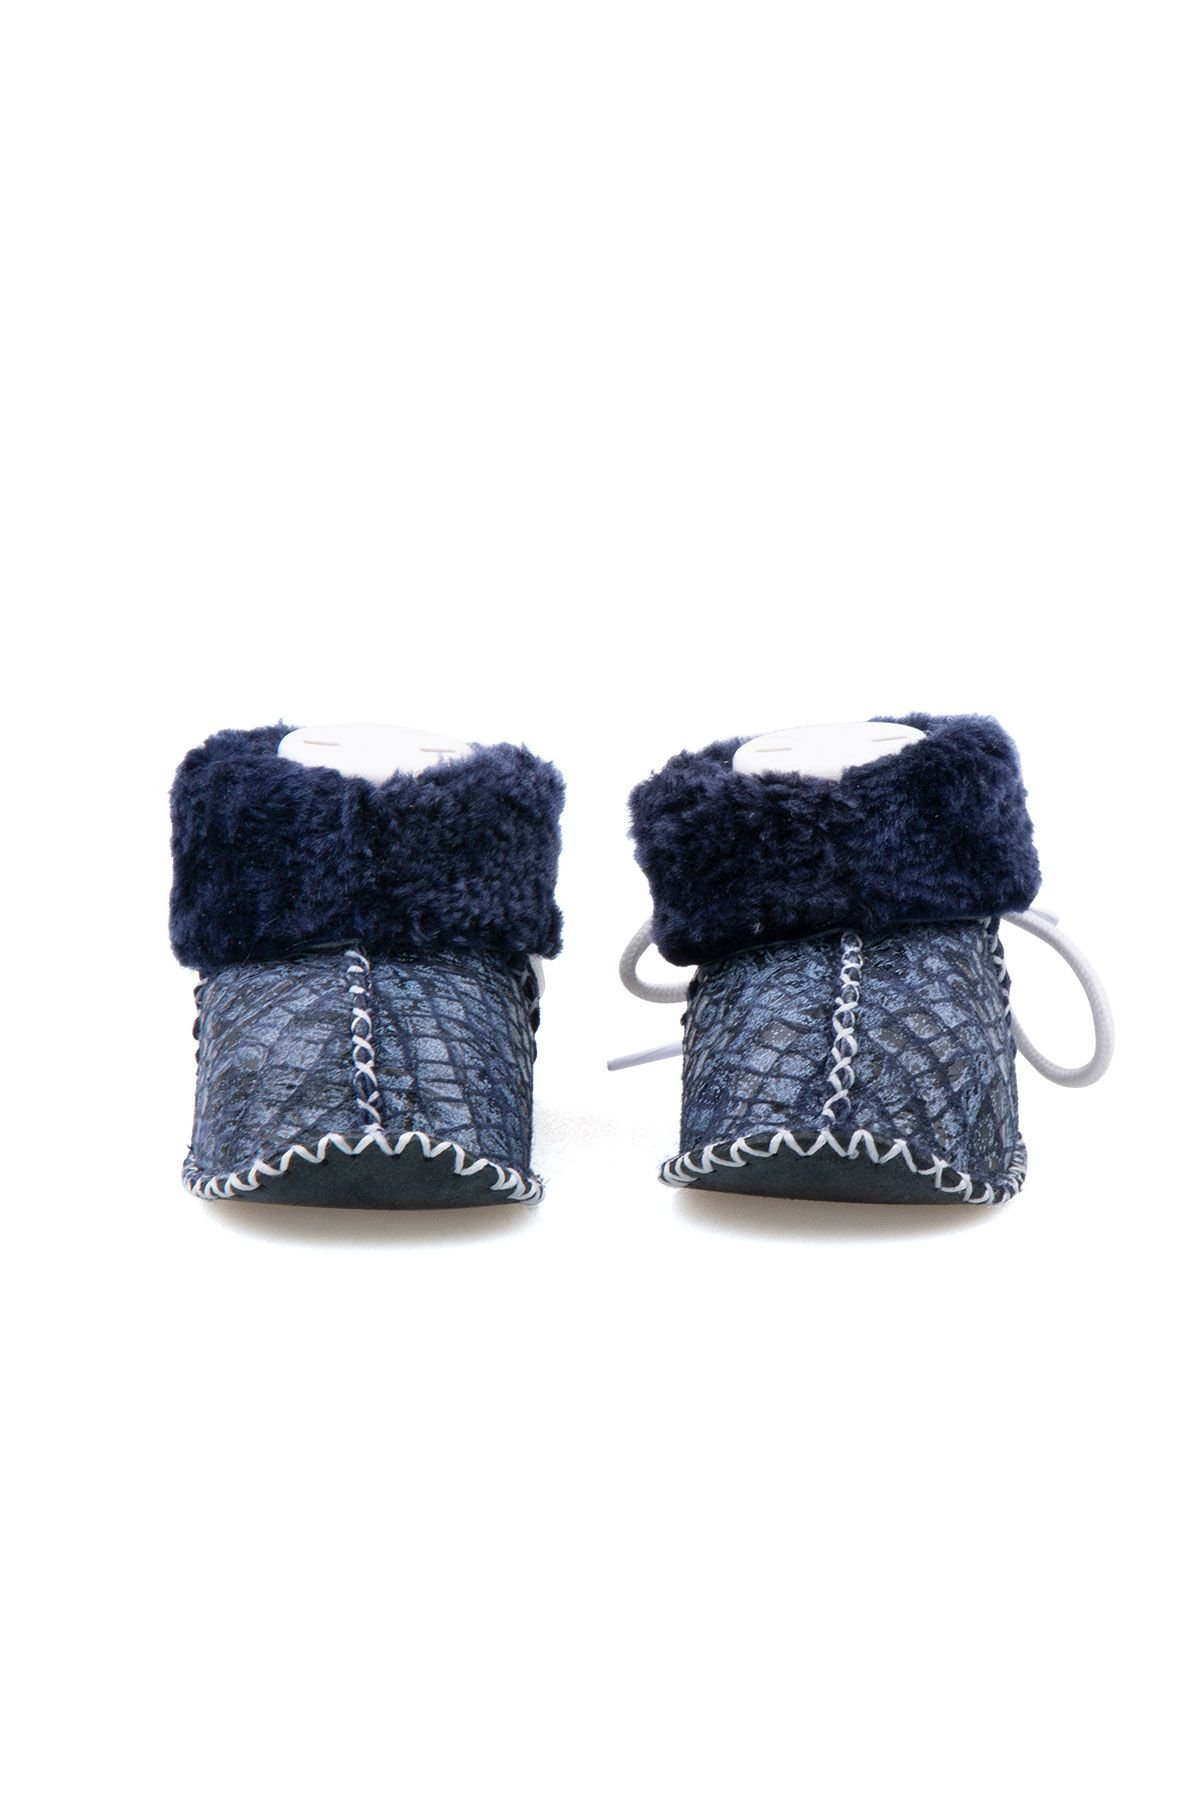 Pegia Shearling Baby's Booties 141113 Navy blue